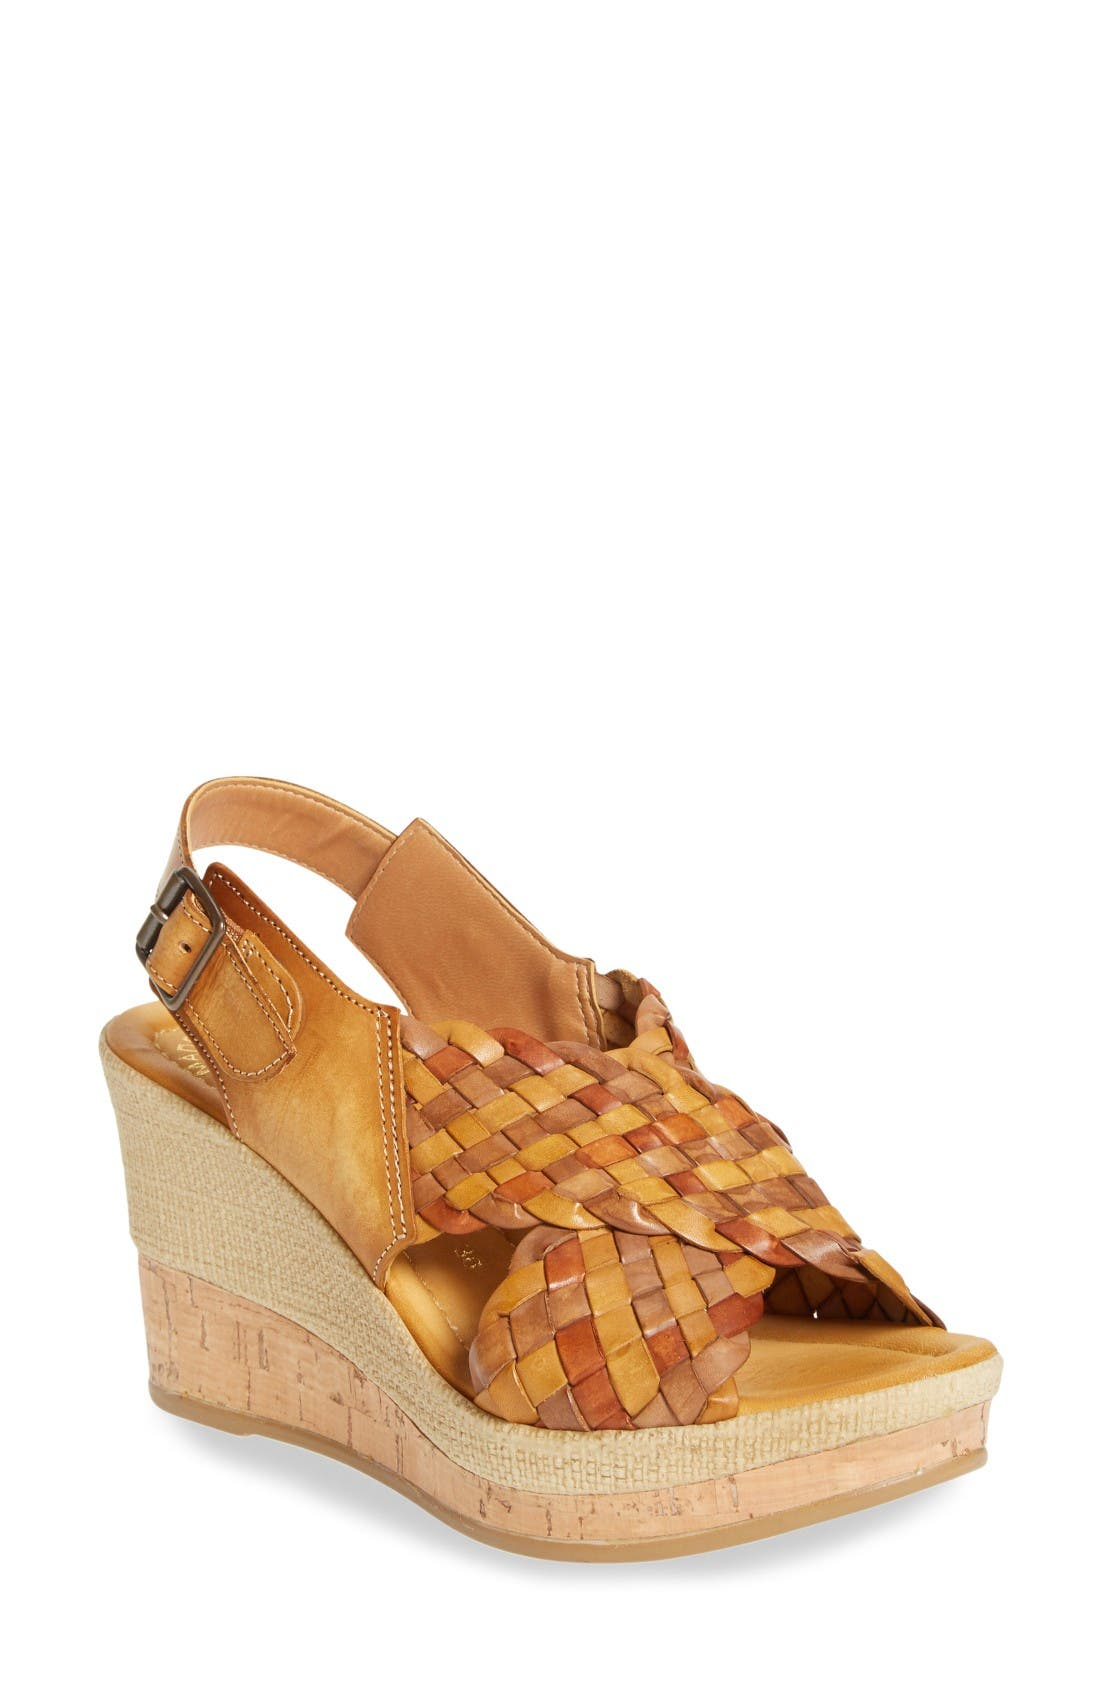 Love Wedge Sandal,                         Main,                         color, Earth Leather